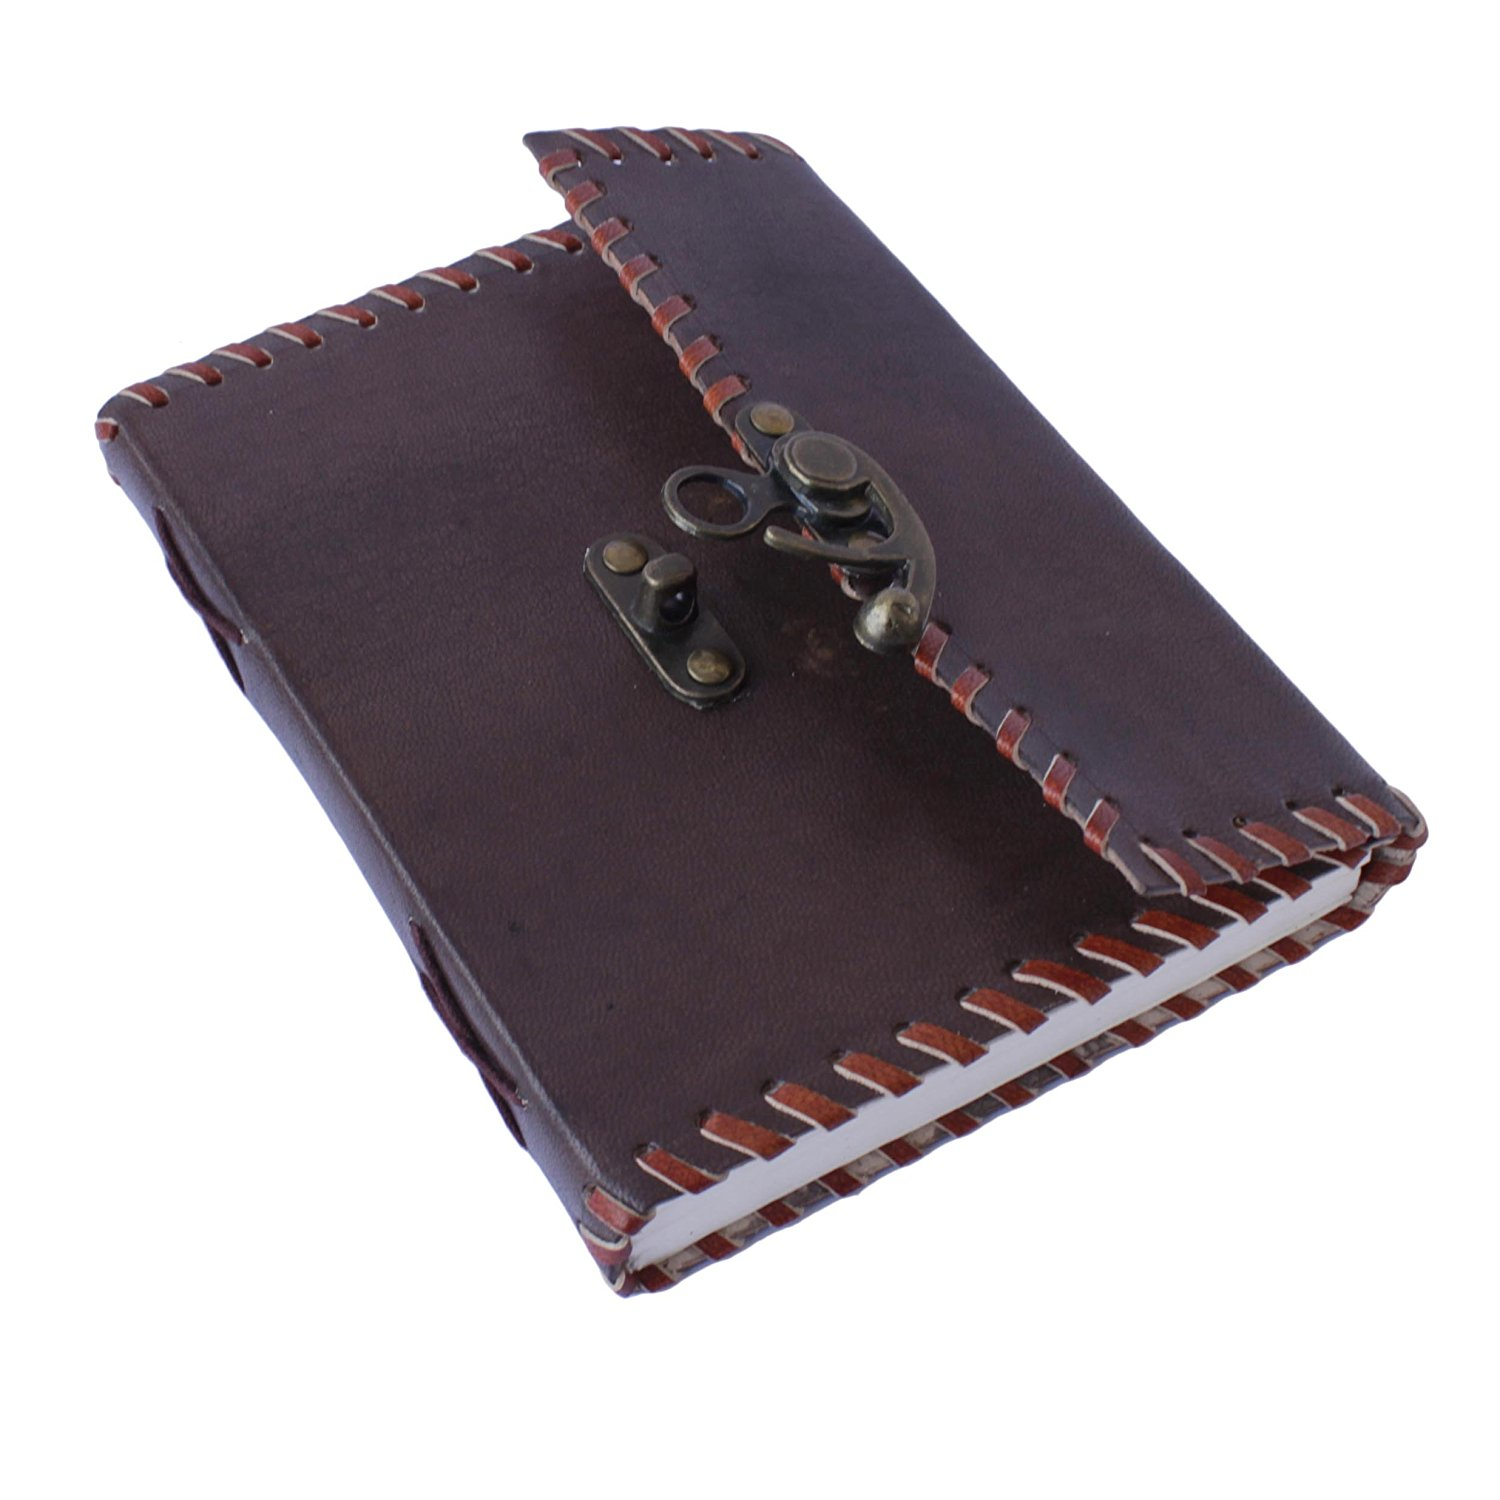 Genuine Leather Journal / Personal Diary / Writing Notebook / Scrap Book/ Doodle Book / Travel Book With Secured Lock Handmade By Artisans Of India